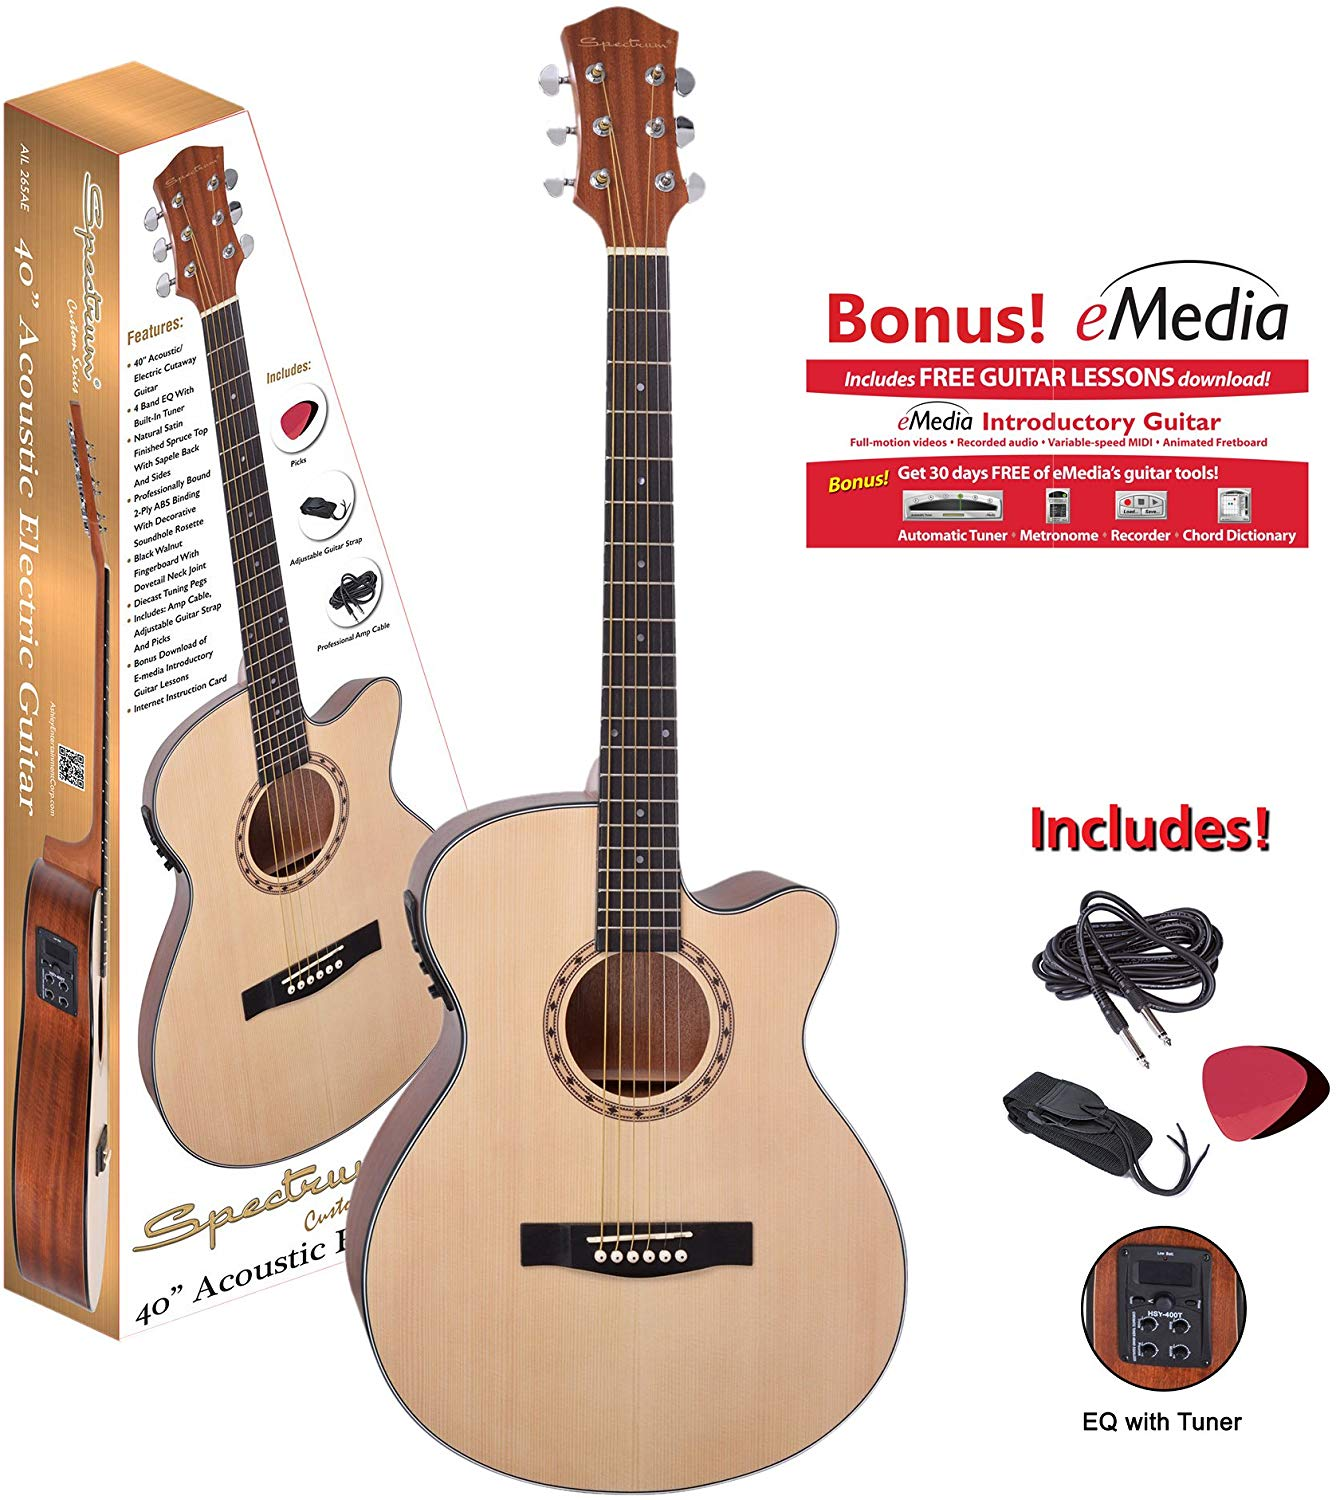 SPECTRUM AIL 265AE CUTAWAY ACOUSTIC ELECTRIC GUITAR.